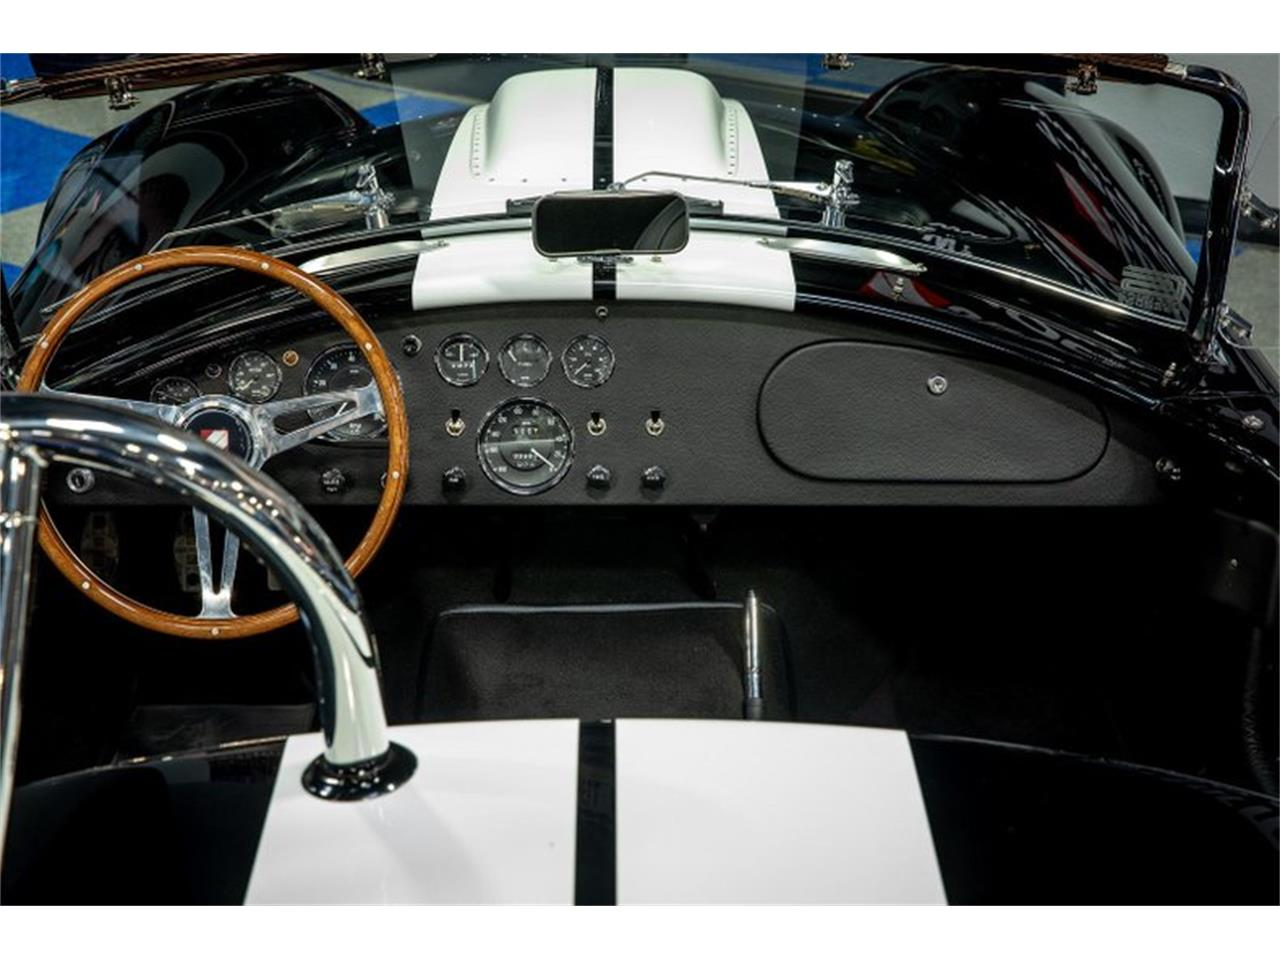 1965 Superformance MKIII (CC-1336641) for sale in Irvine, California